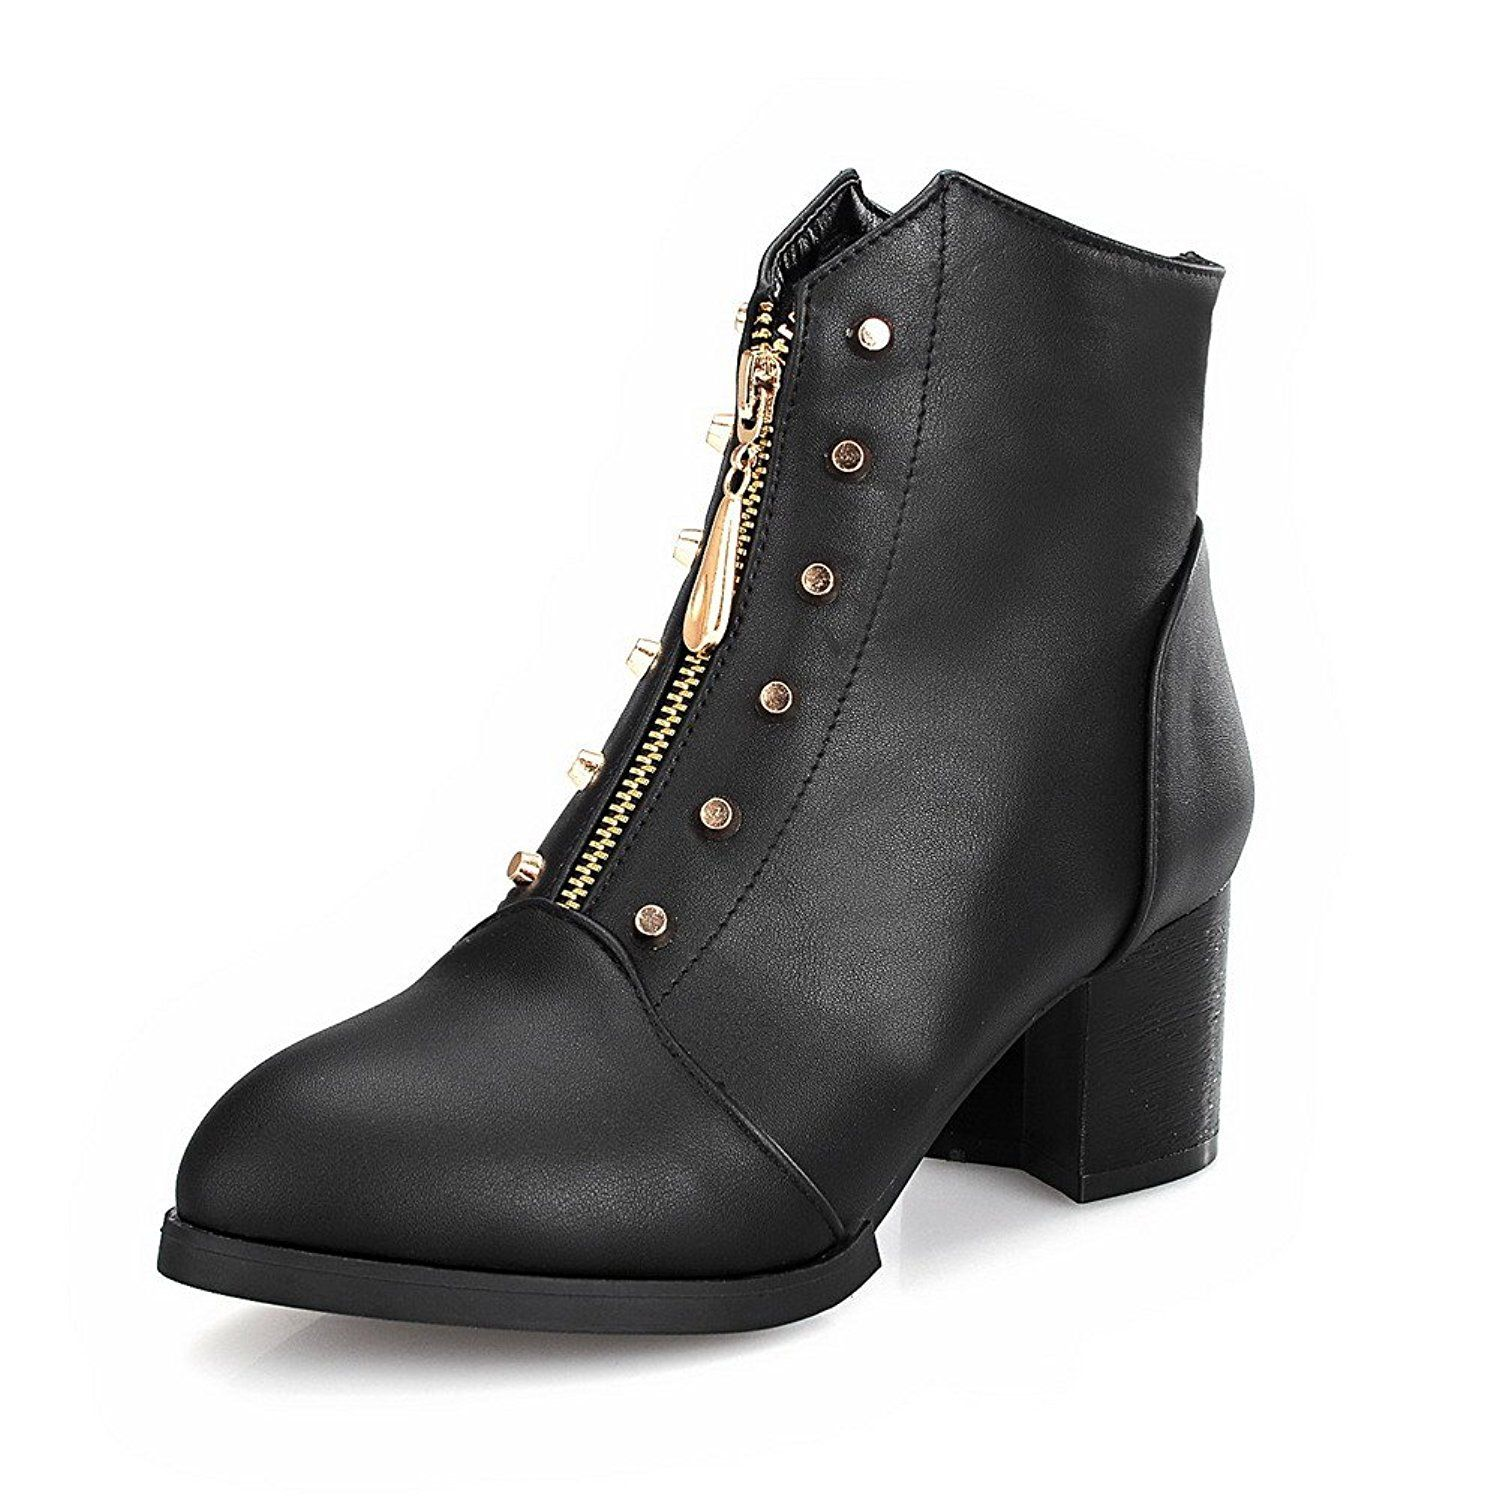 Women's Zipper Kitten-Heels PU Solid Low-Top Boots